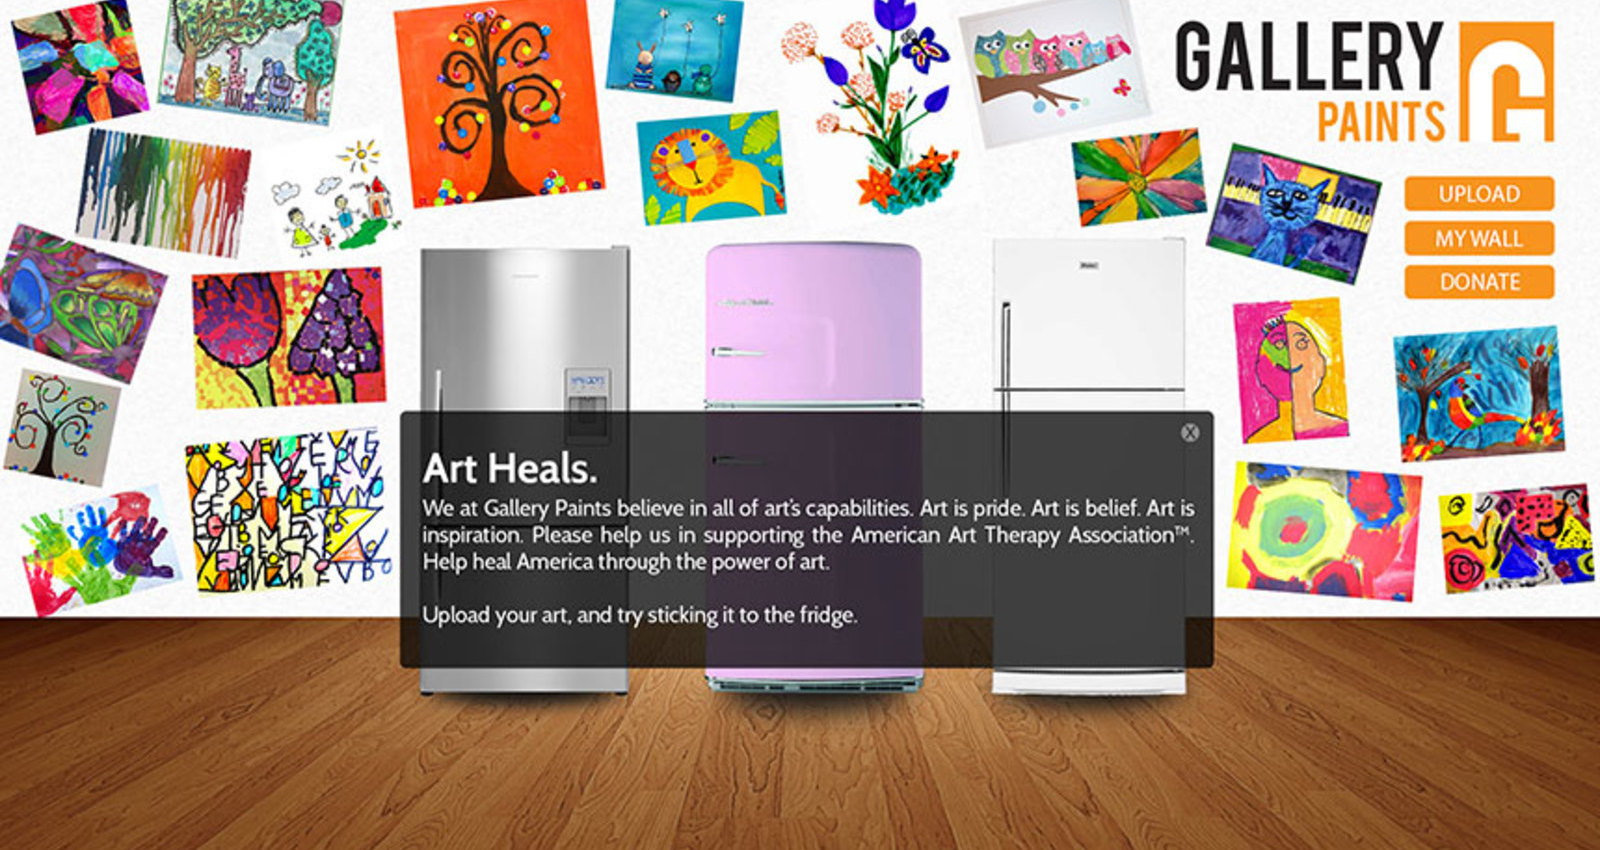 Gallery Paints